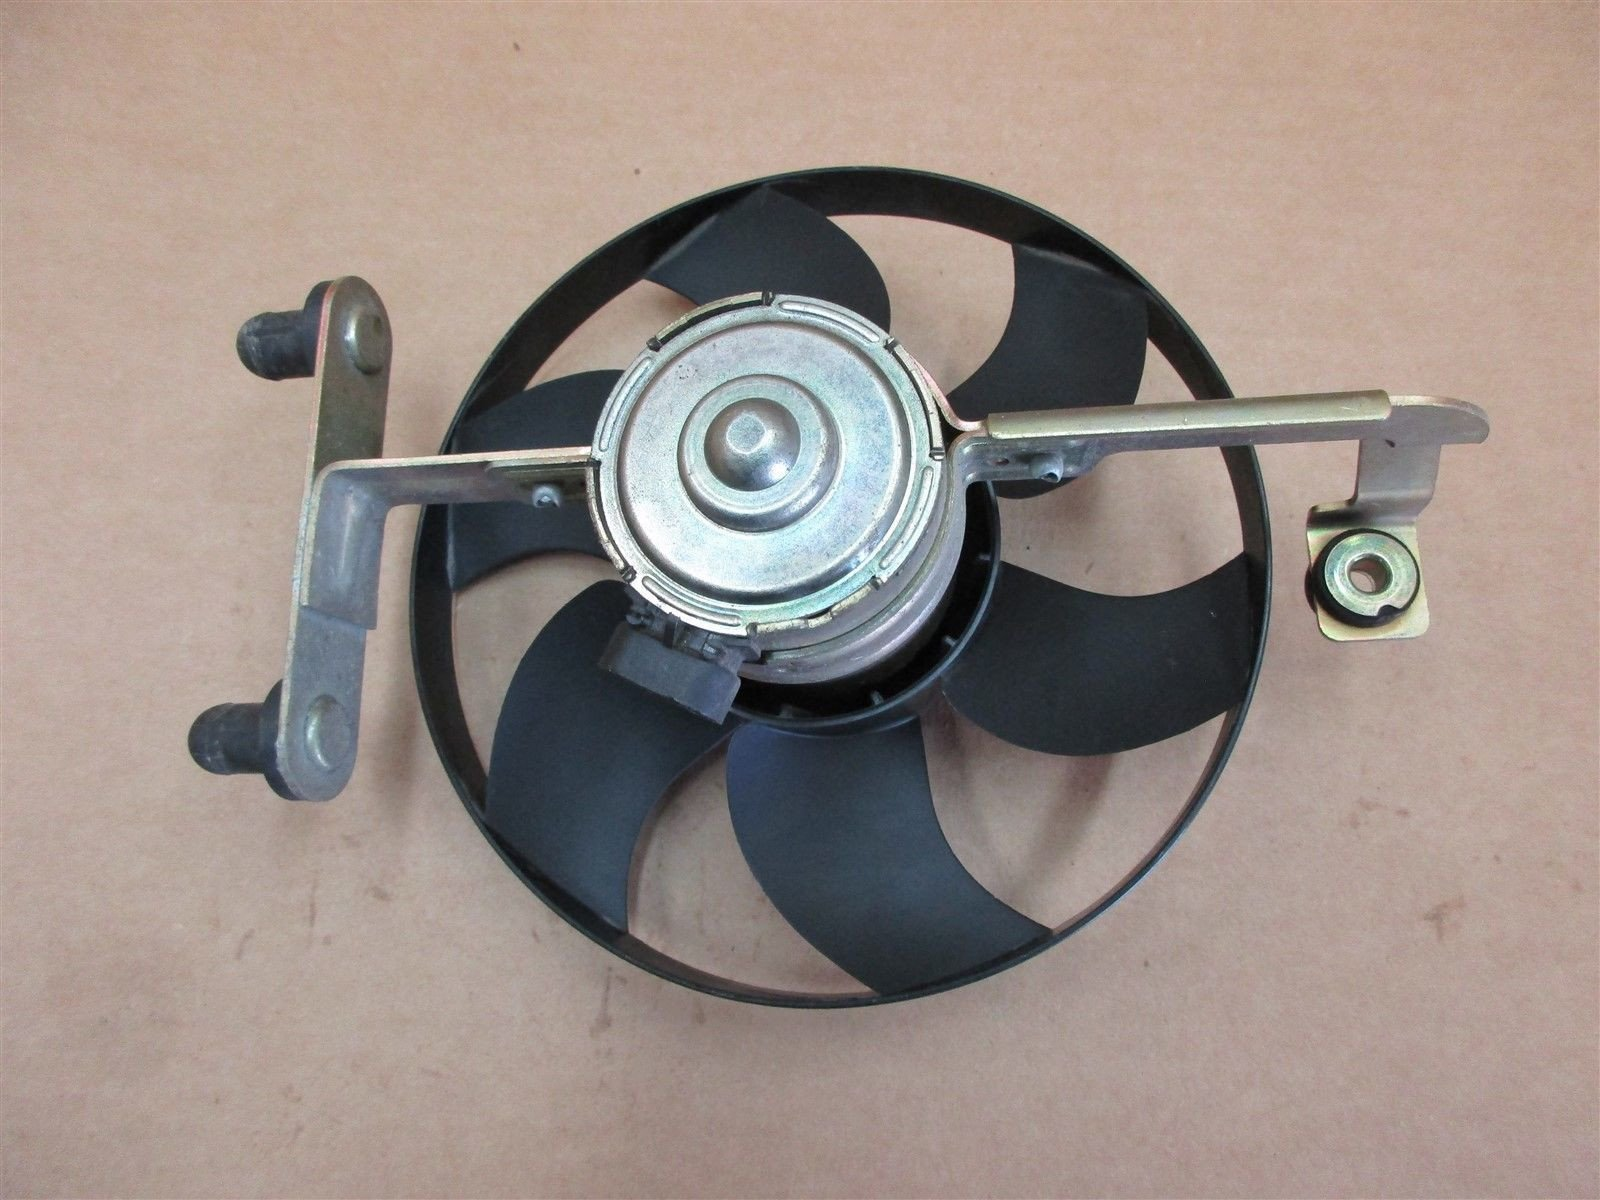 00 Boxster RWD Porsche 986 Engine Cooling FAN MOTOR 98662403600 15,740